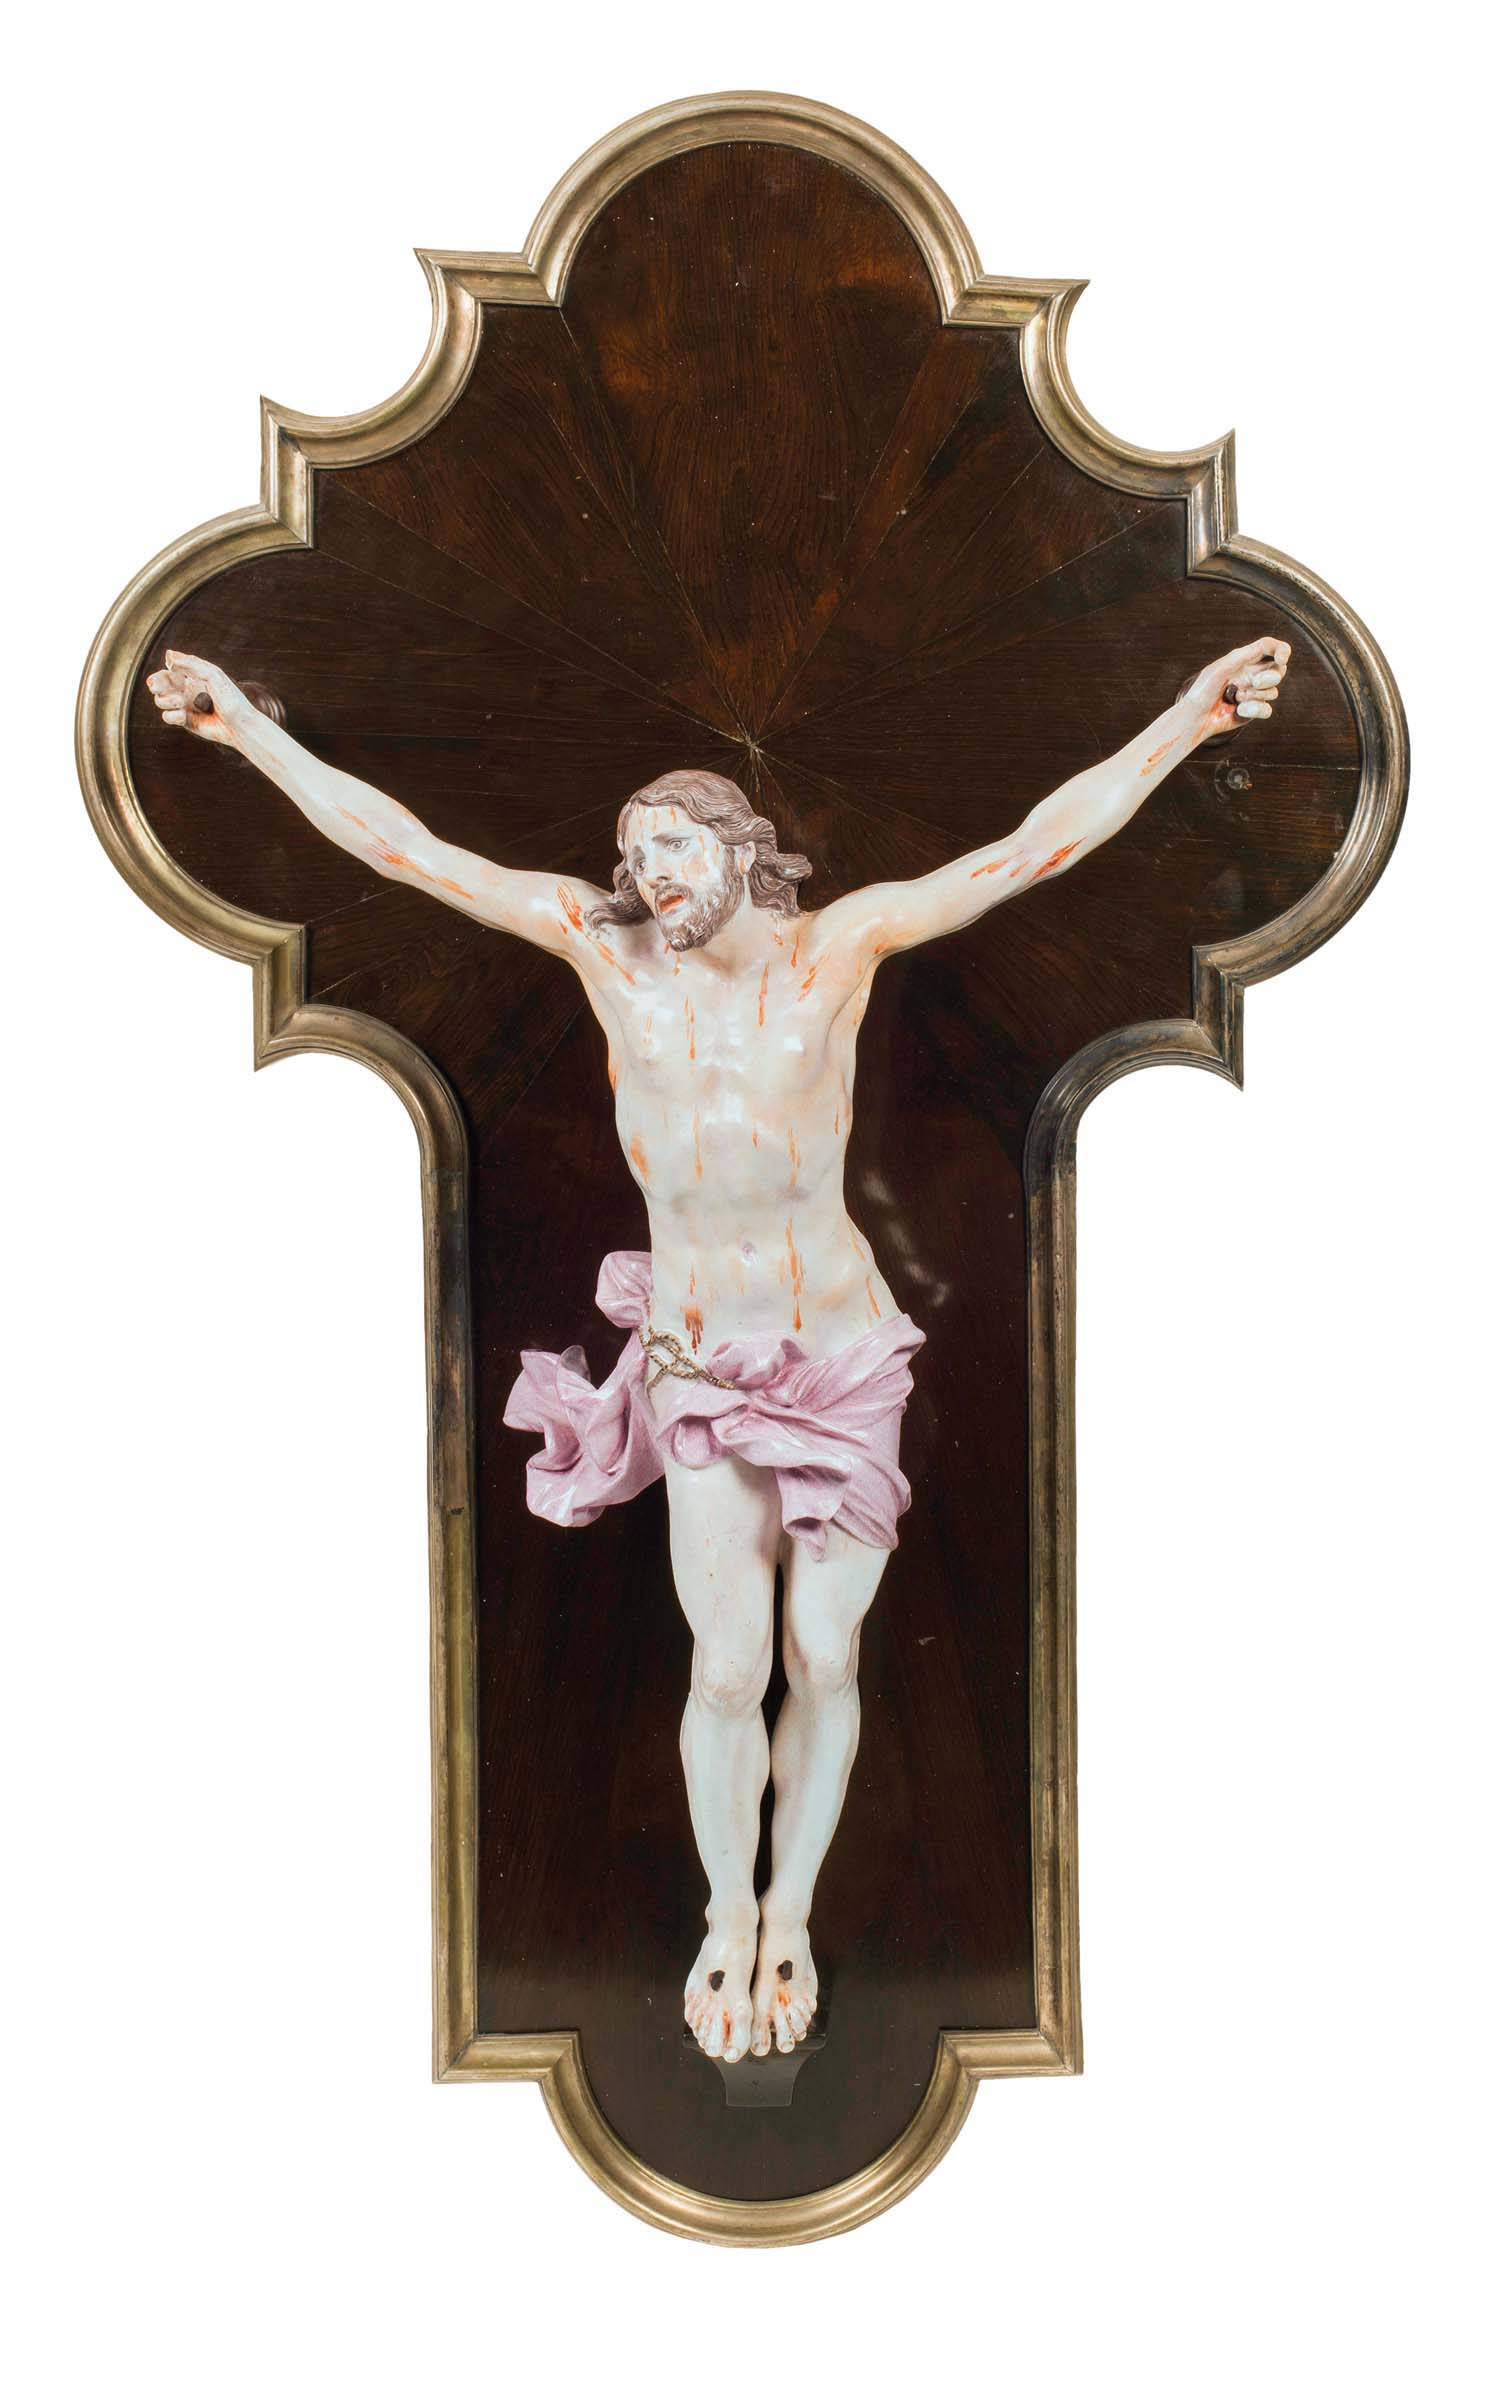 A crucifix sculpture from a model by Alessandro Algardi